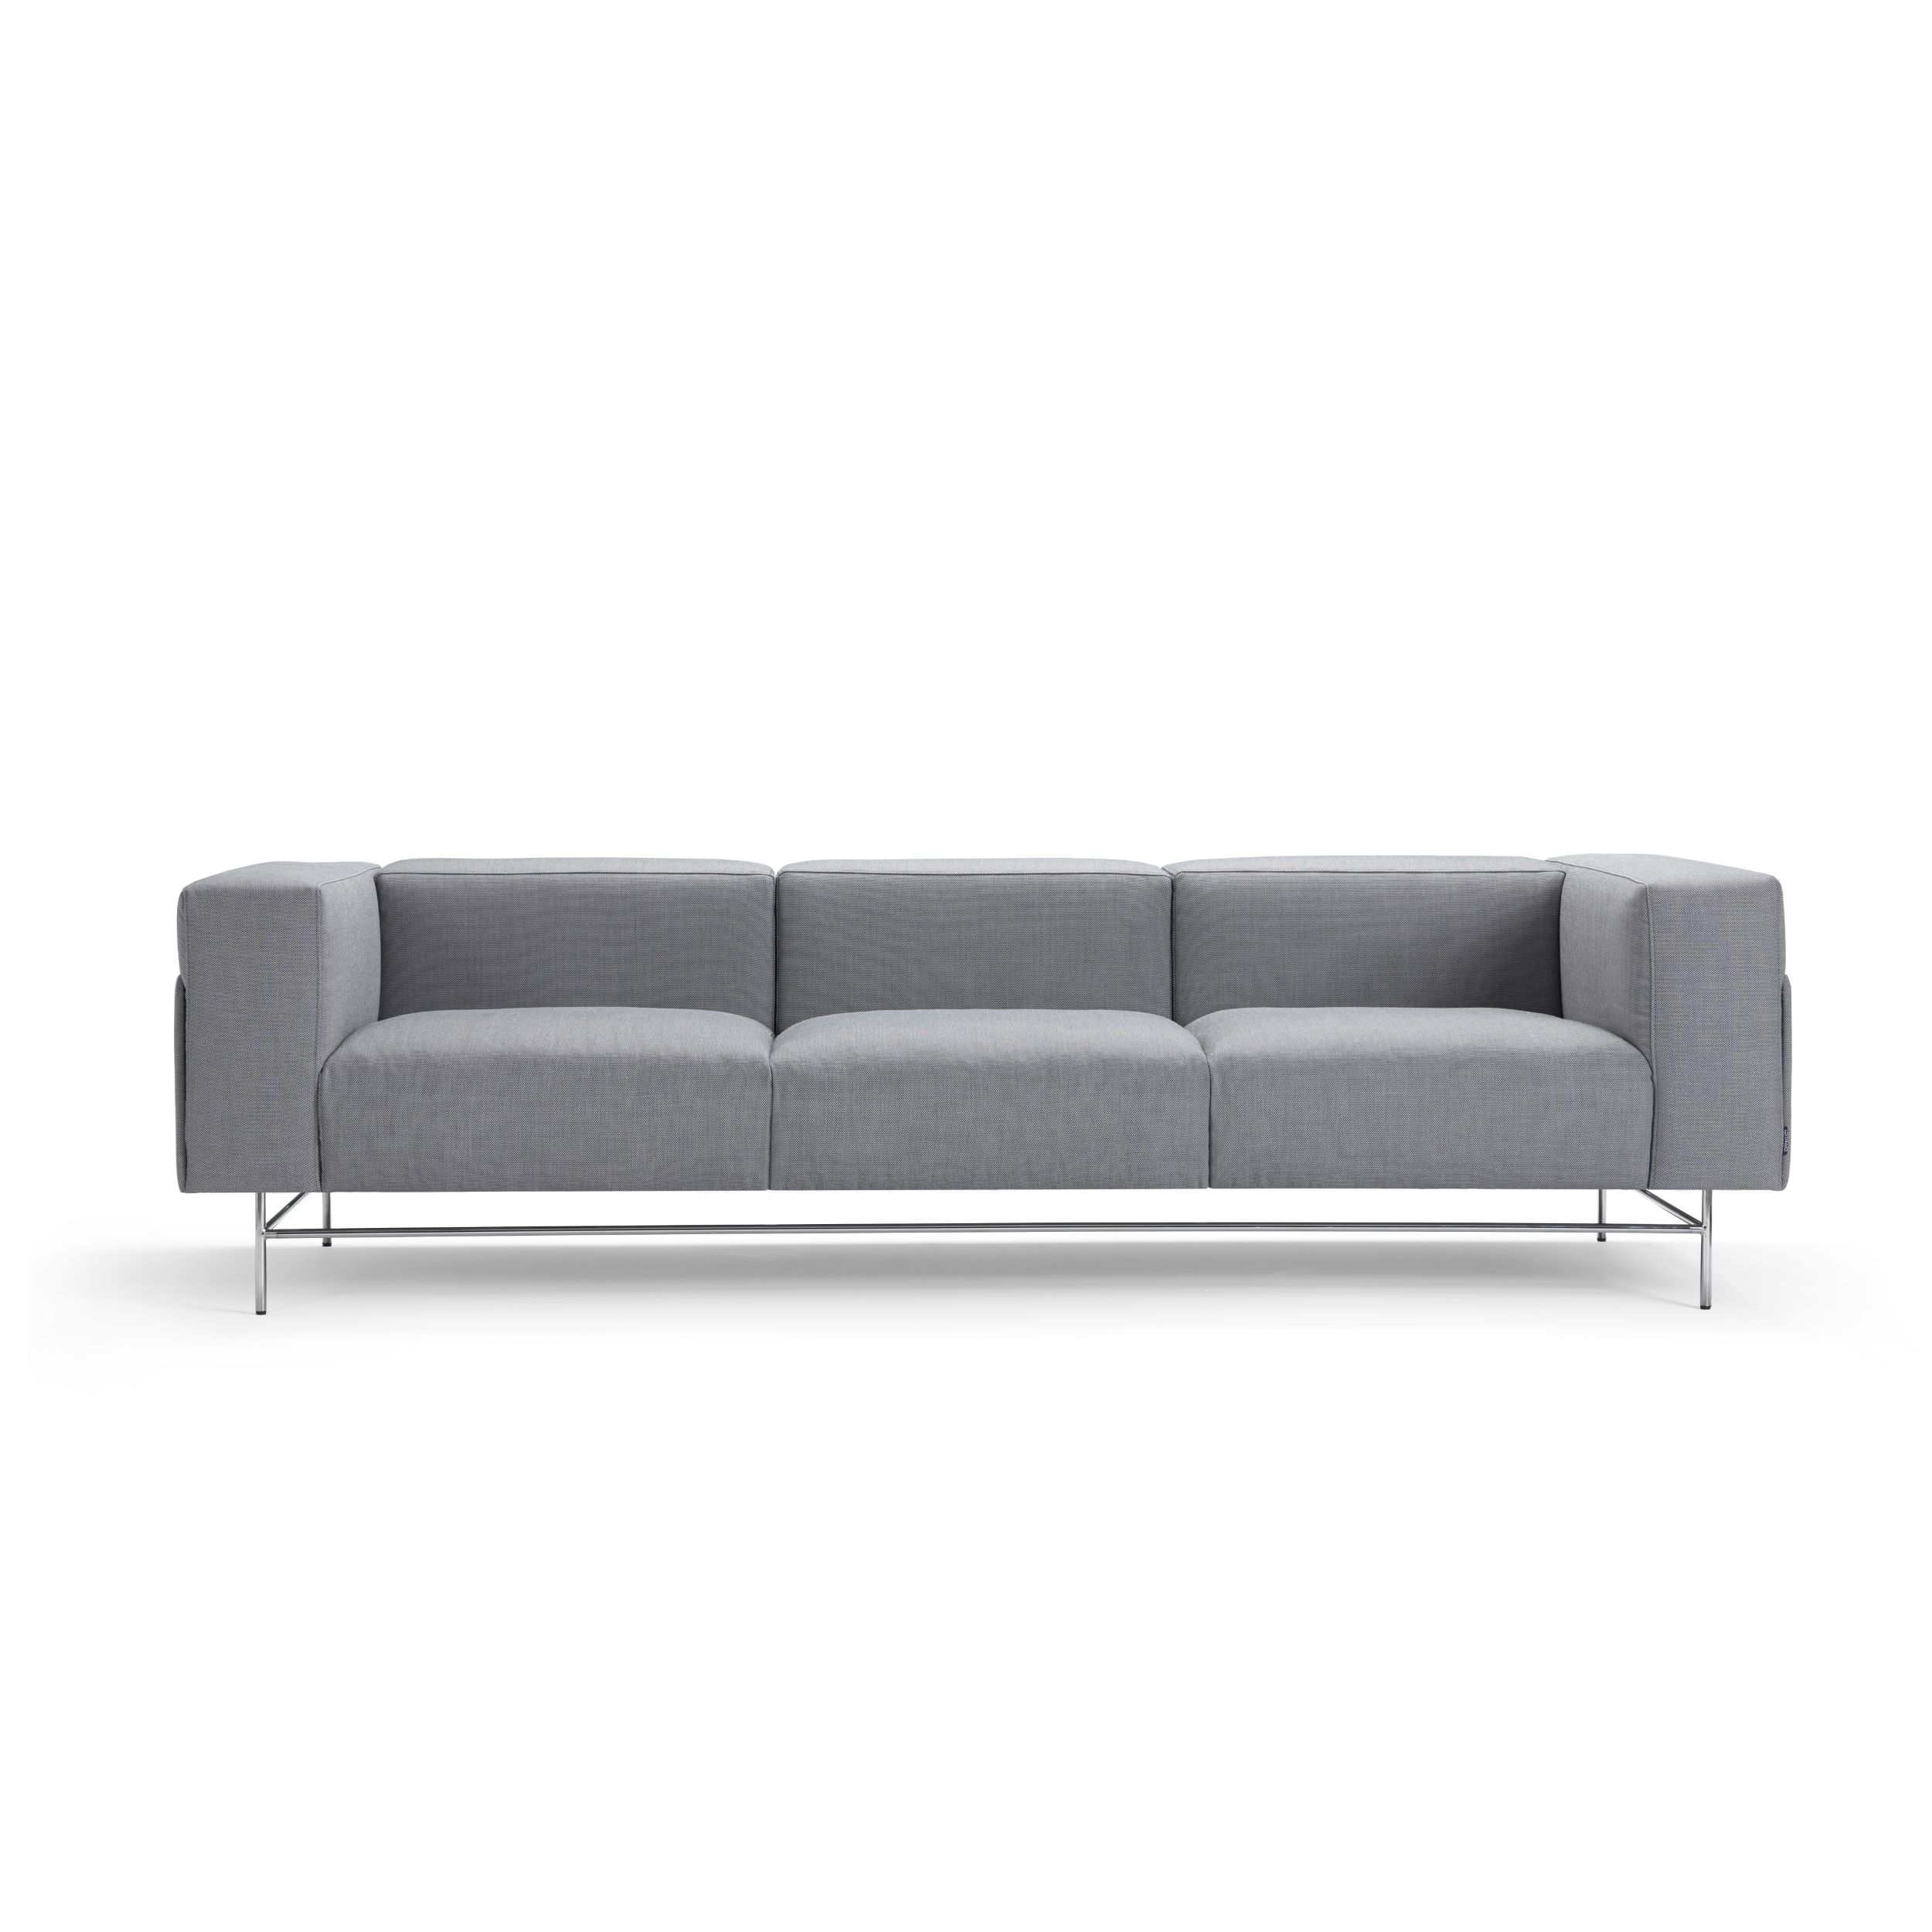 And Sofa Sofas Adaptable Designs Made For Large And Small Rooms